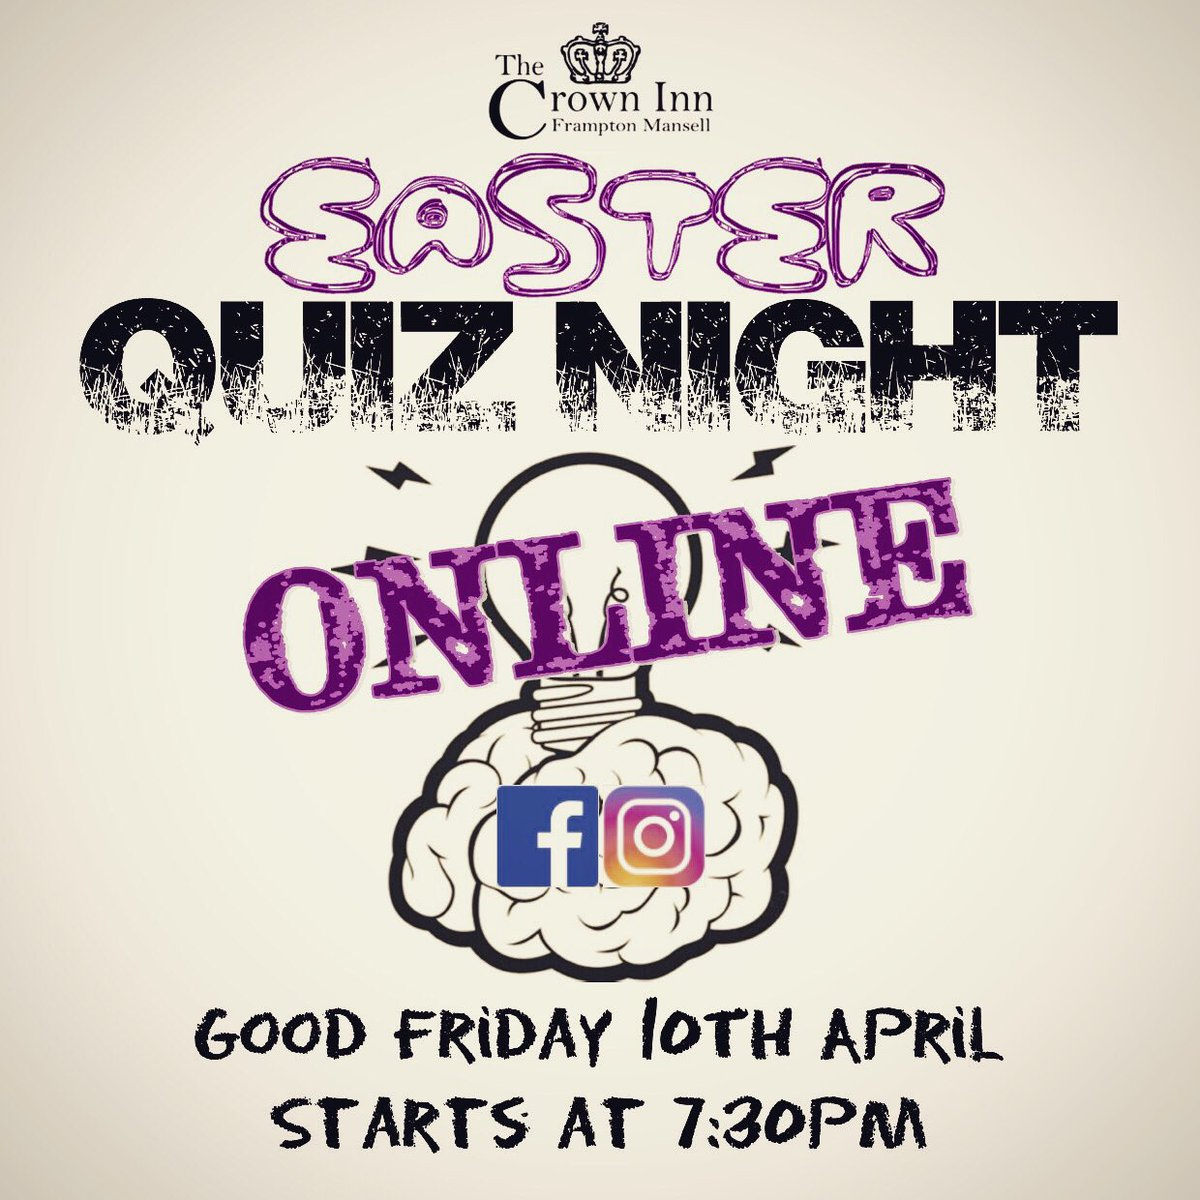 IT'S BACK!!!  After the success of last week, we thought we'd do it again! Join us next Friday for an Easter Extravaganza! #quiz #quiznight #lockdown #covid_19 #isolation #StayHomeSaveLives #isolationentertainment #stayhome #framptonmansell #thecrowninn #cotswoldspic.twitter.com/G7ZnoFKIu2